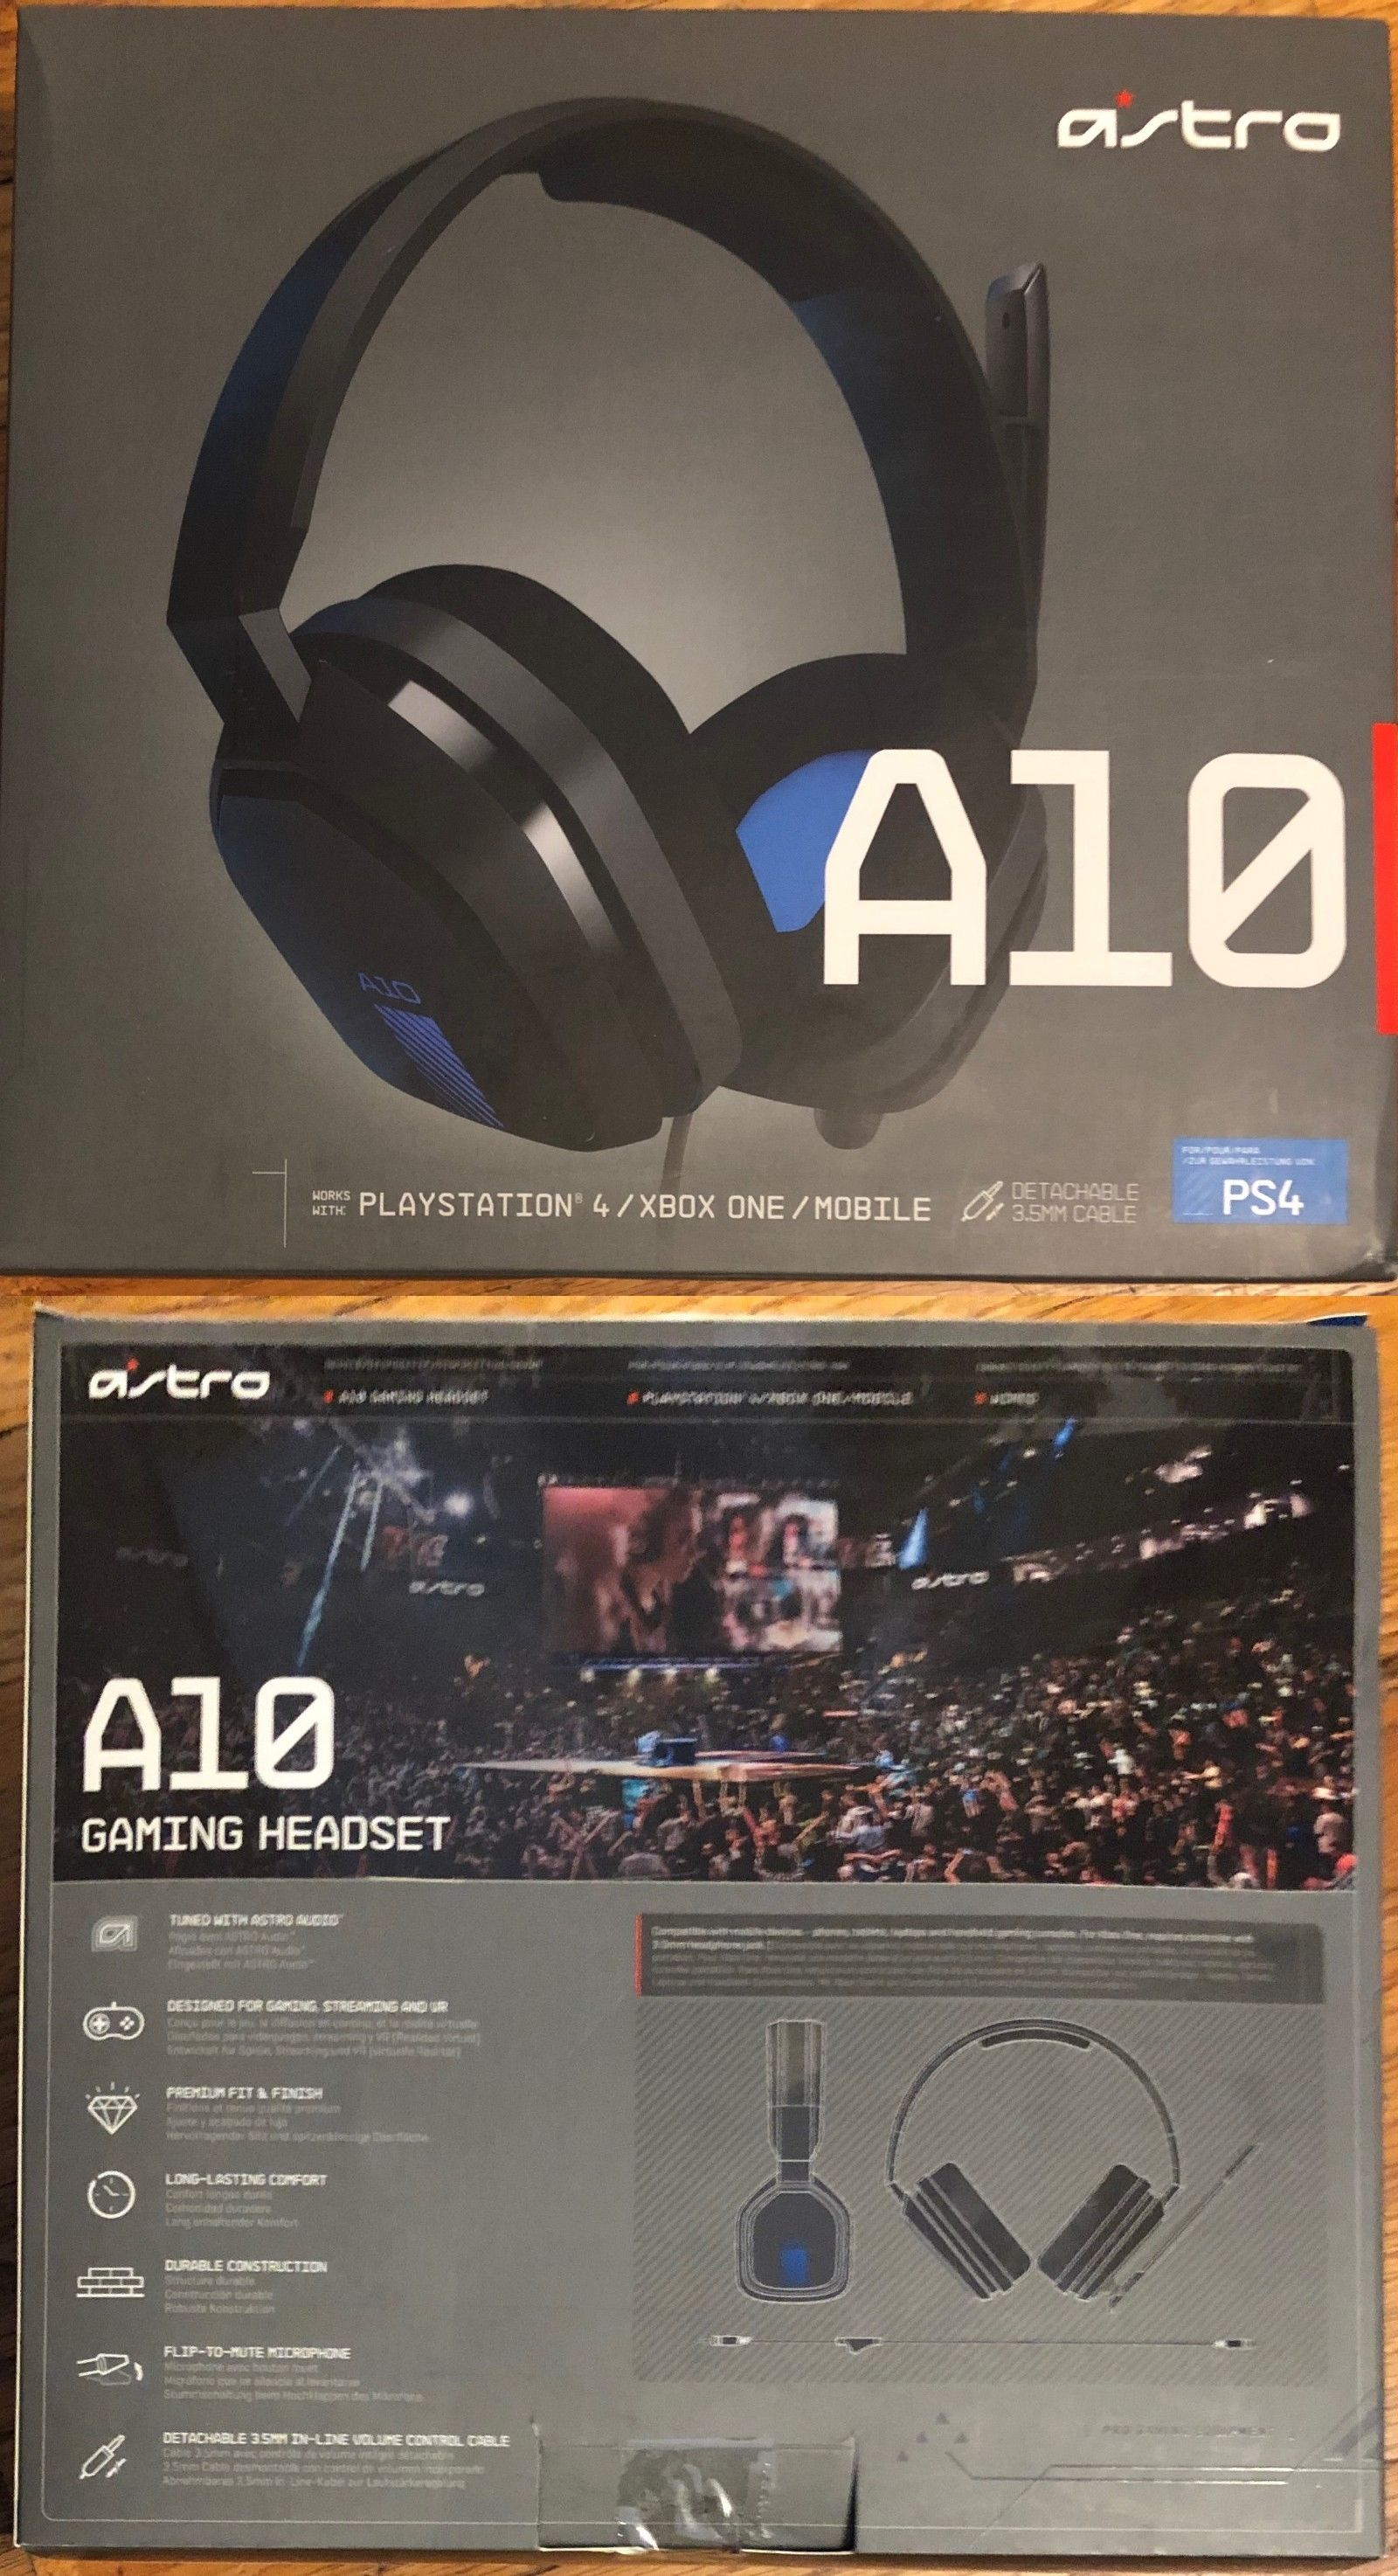 Headsets 171821: Astro A10 Gaming Headset Ps4 Xbox One